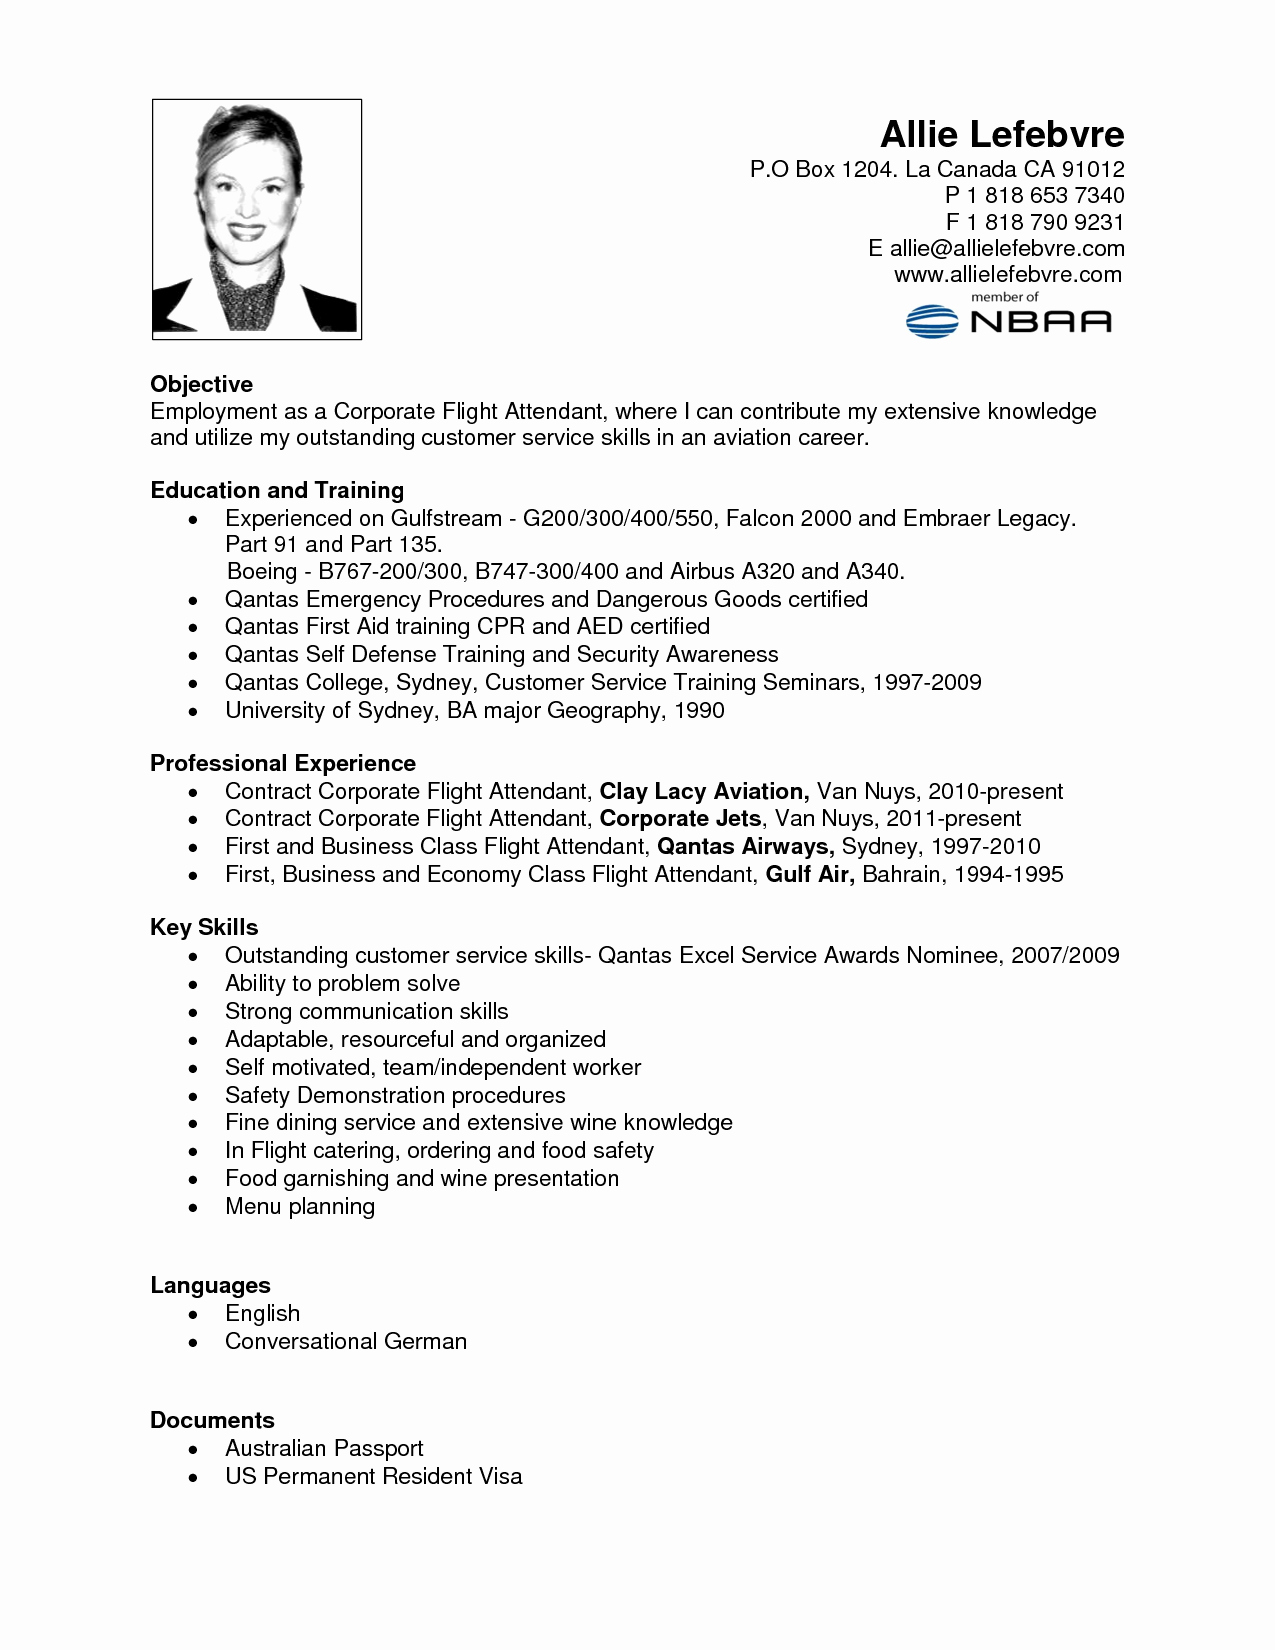 Resume Flight Attendant Without Experience